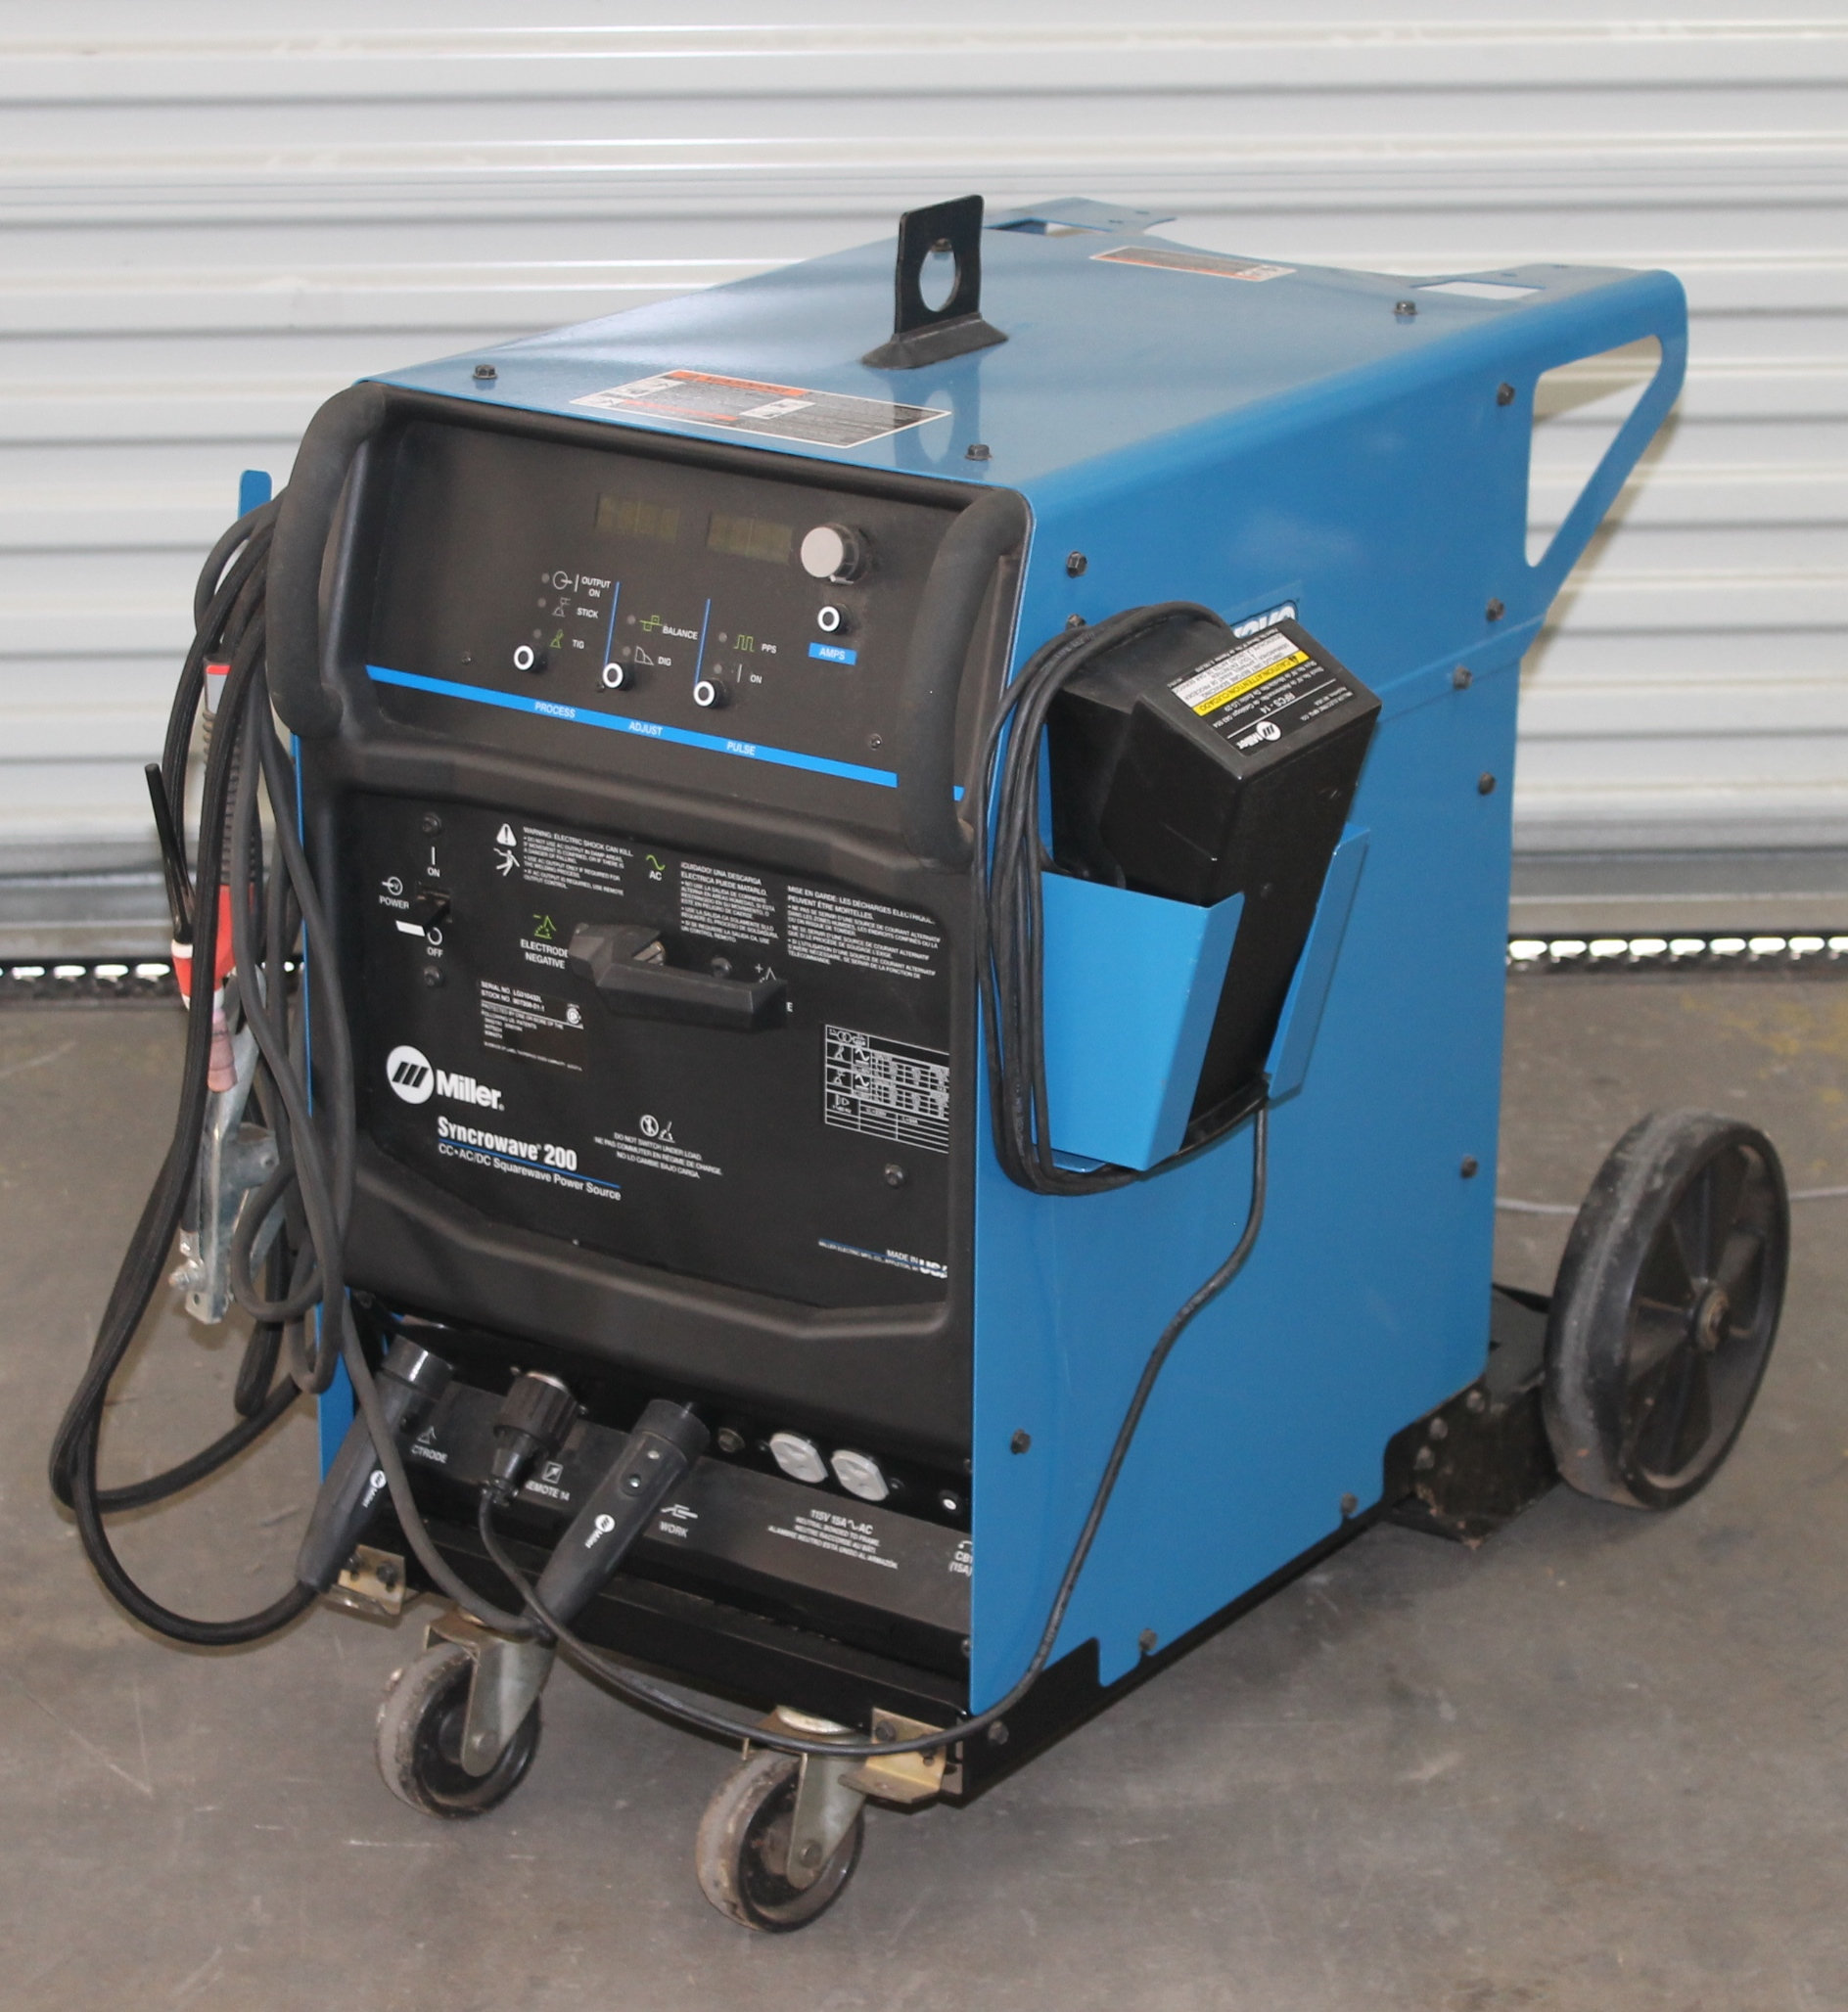 Miller Syncrowave 200 Tig  Stick Welder  Model  Syncrowave 200  Input Power  208